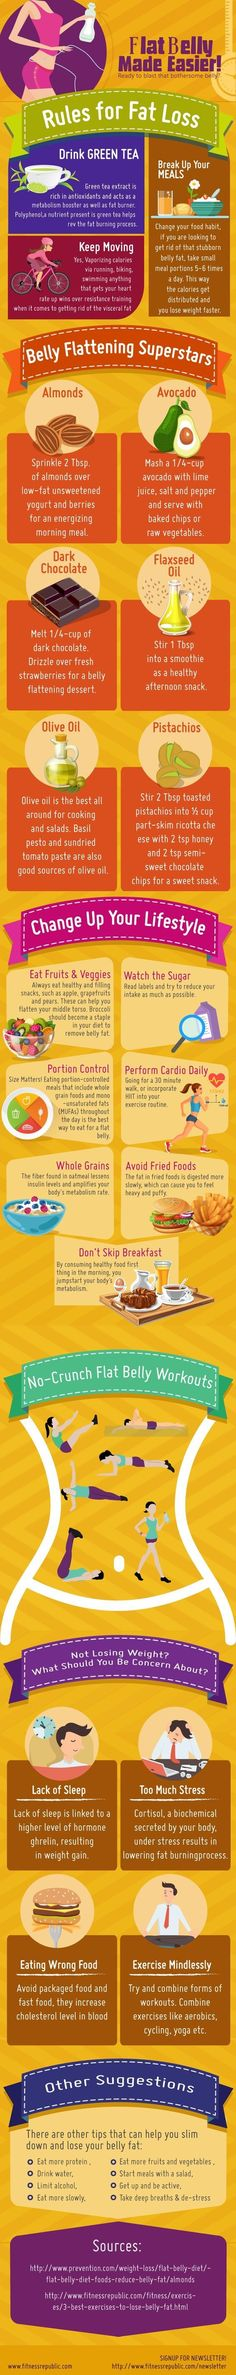 Twenty Five Ways to Slim Your Tummy Fast Infographic: Tips For Attaining A Flat Stomach, What To Eat And Do To Burn Fat - DesignTAXI.com: